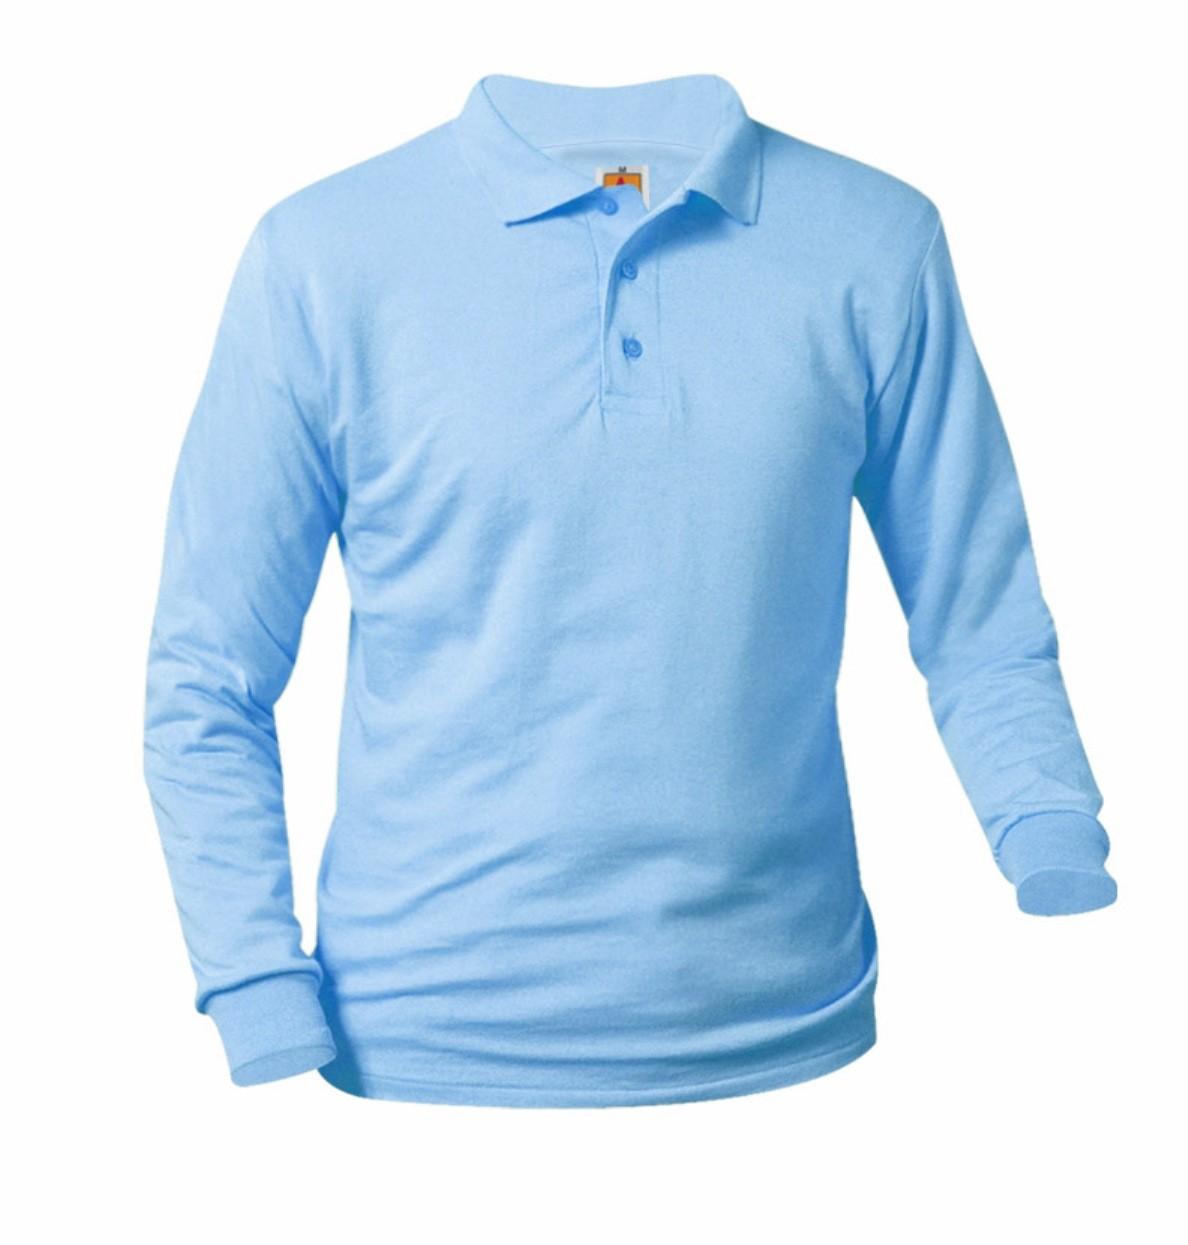 ASM A+ Long Sleeve Polo #8766